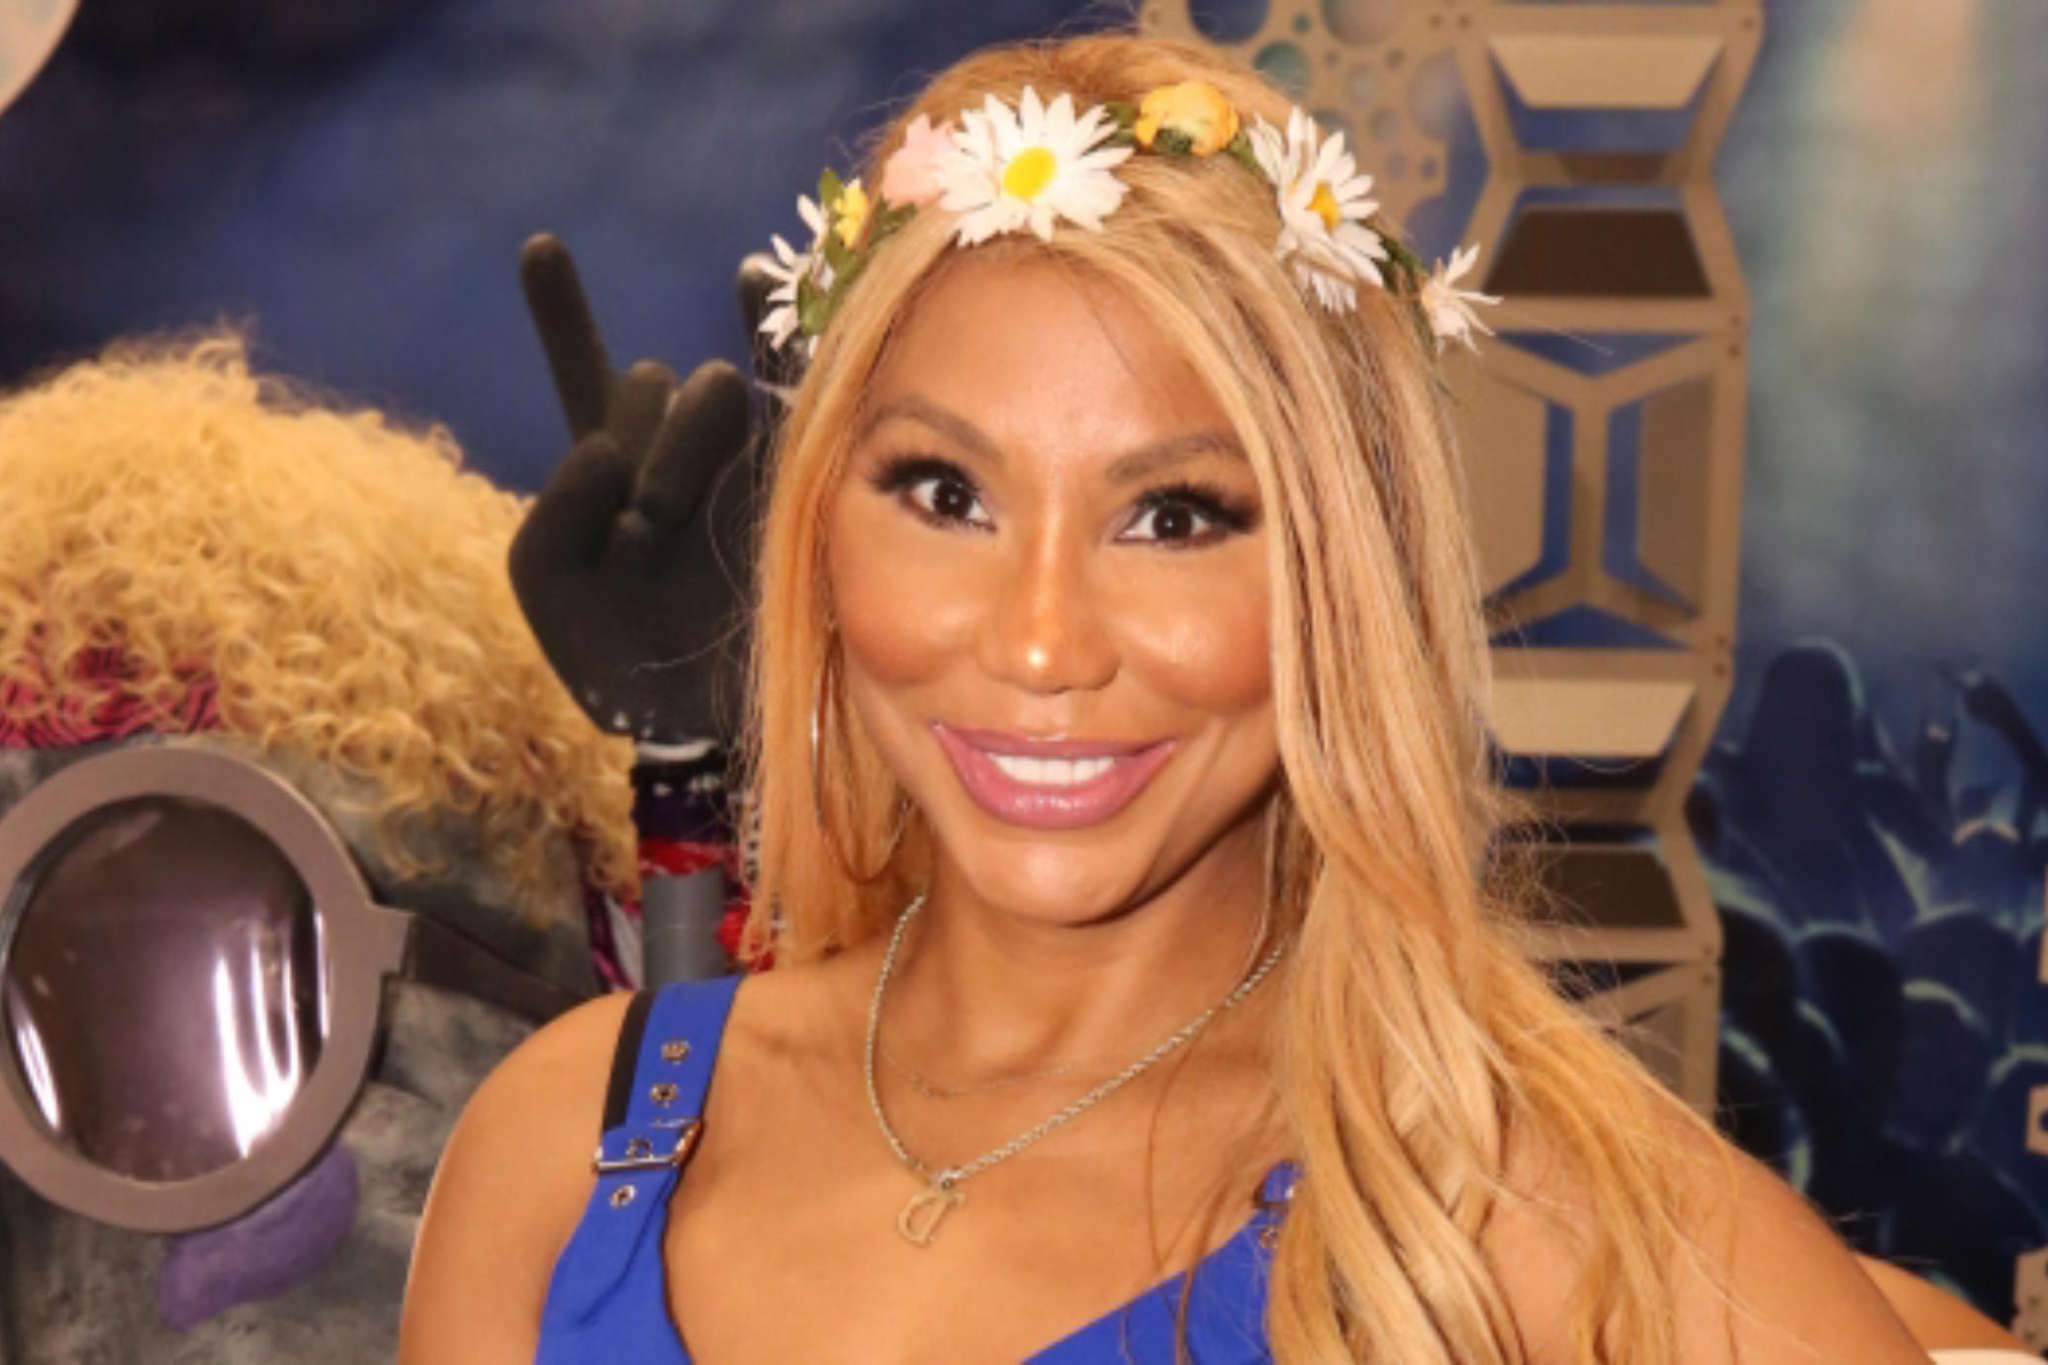 Tamar Braxton Has An Important Message For Her Fans